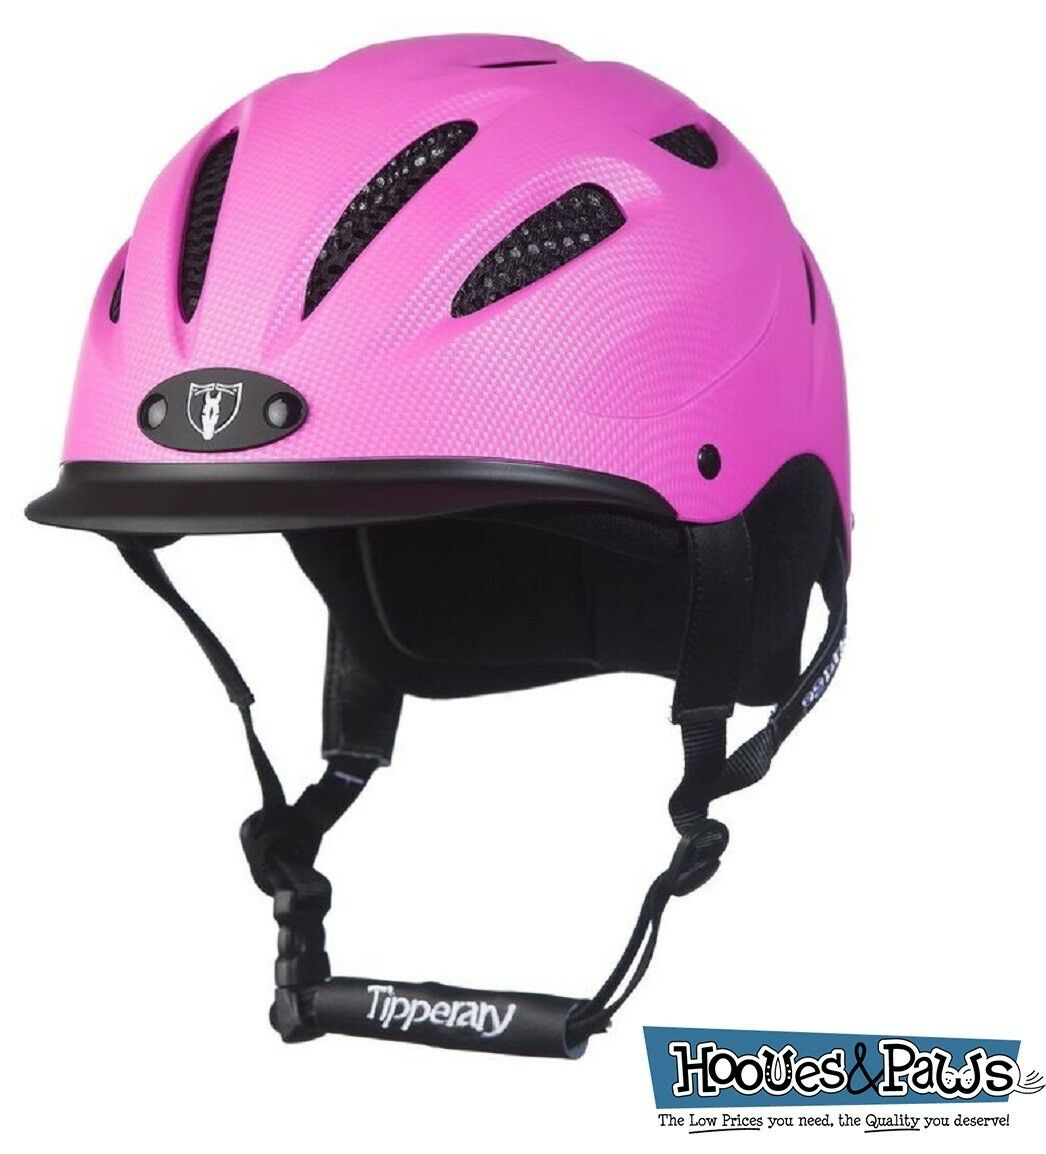 Tipperary  Sportage Western Riding Helmet Low Profile Horse Safety Pink  exciting promotions